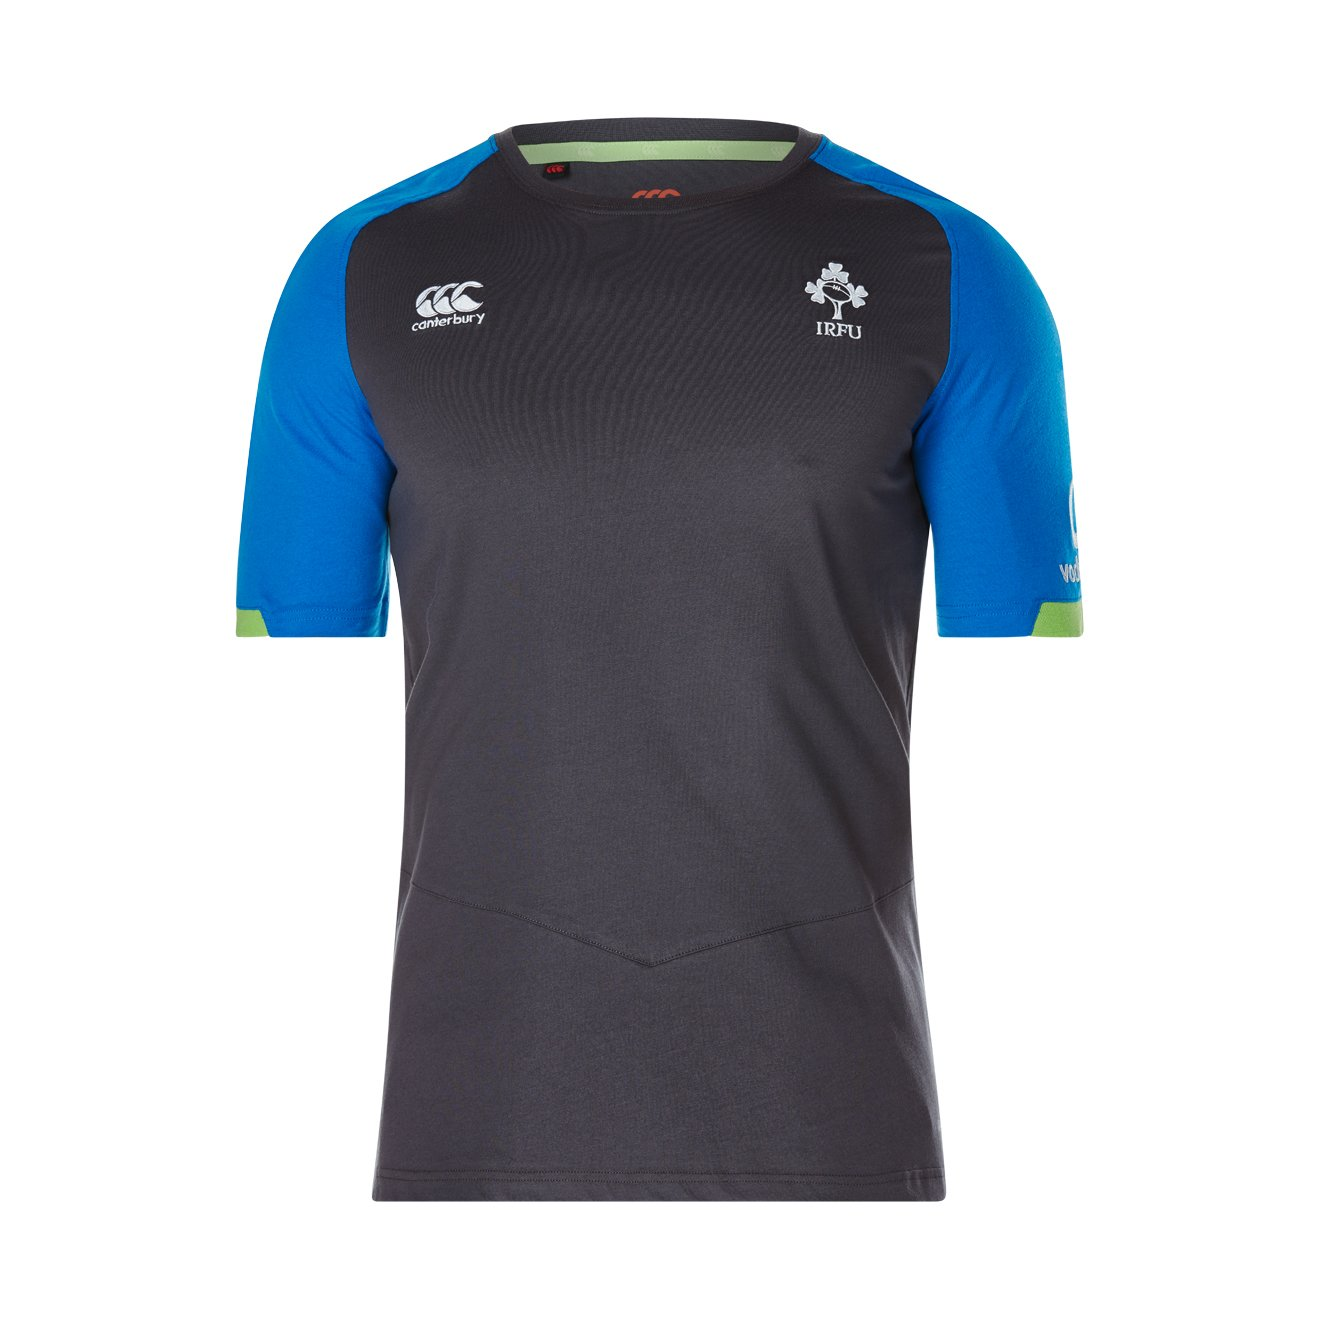 2017-2018 Ireland Rugby Cotton Training Tee (Asphalt) B073VRYS31Grey XL 46\